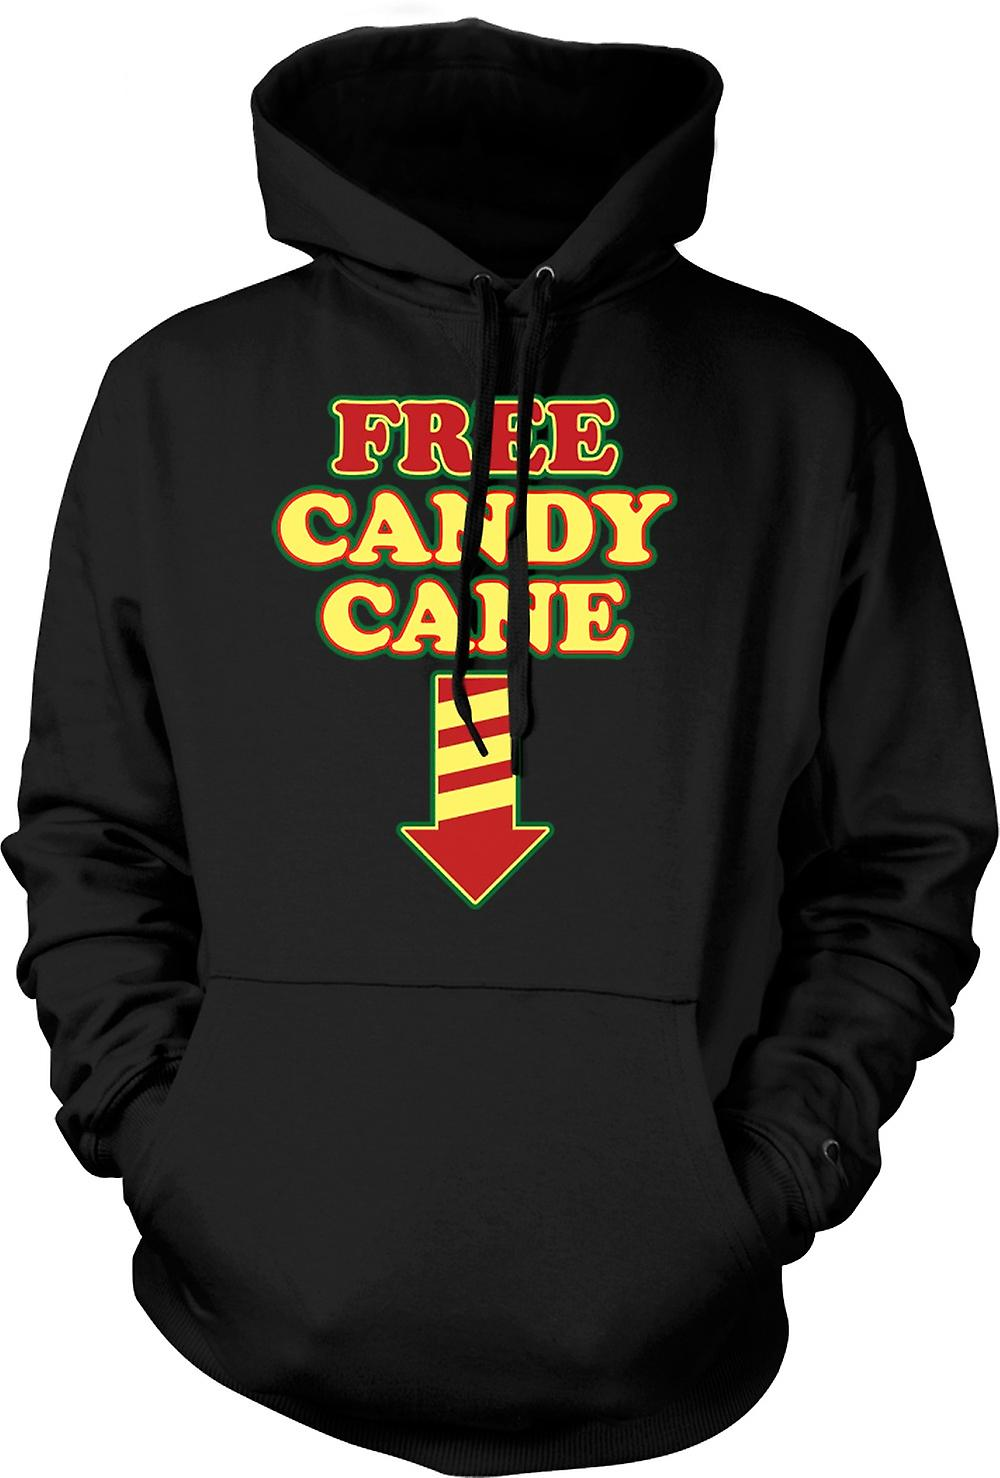 Mens Hoodie - Free Candy Cane - Funny Christmas